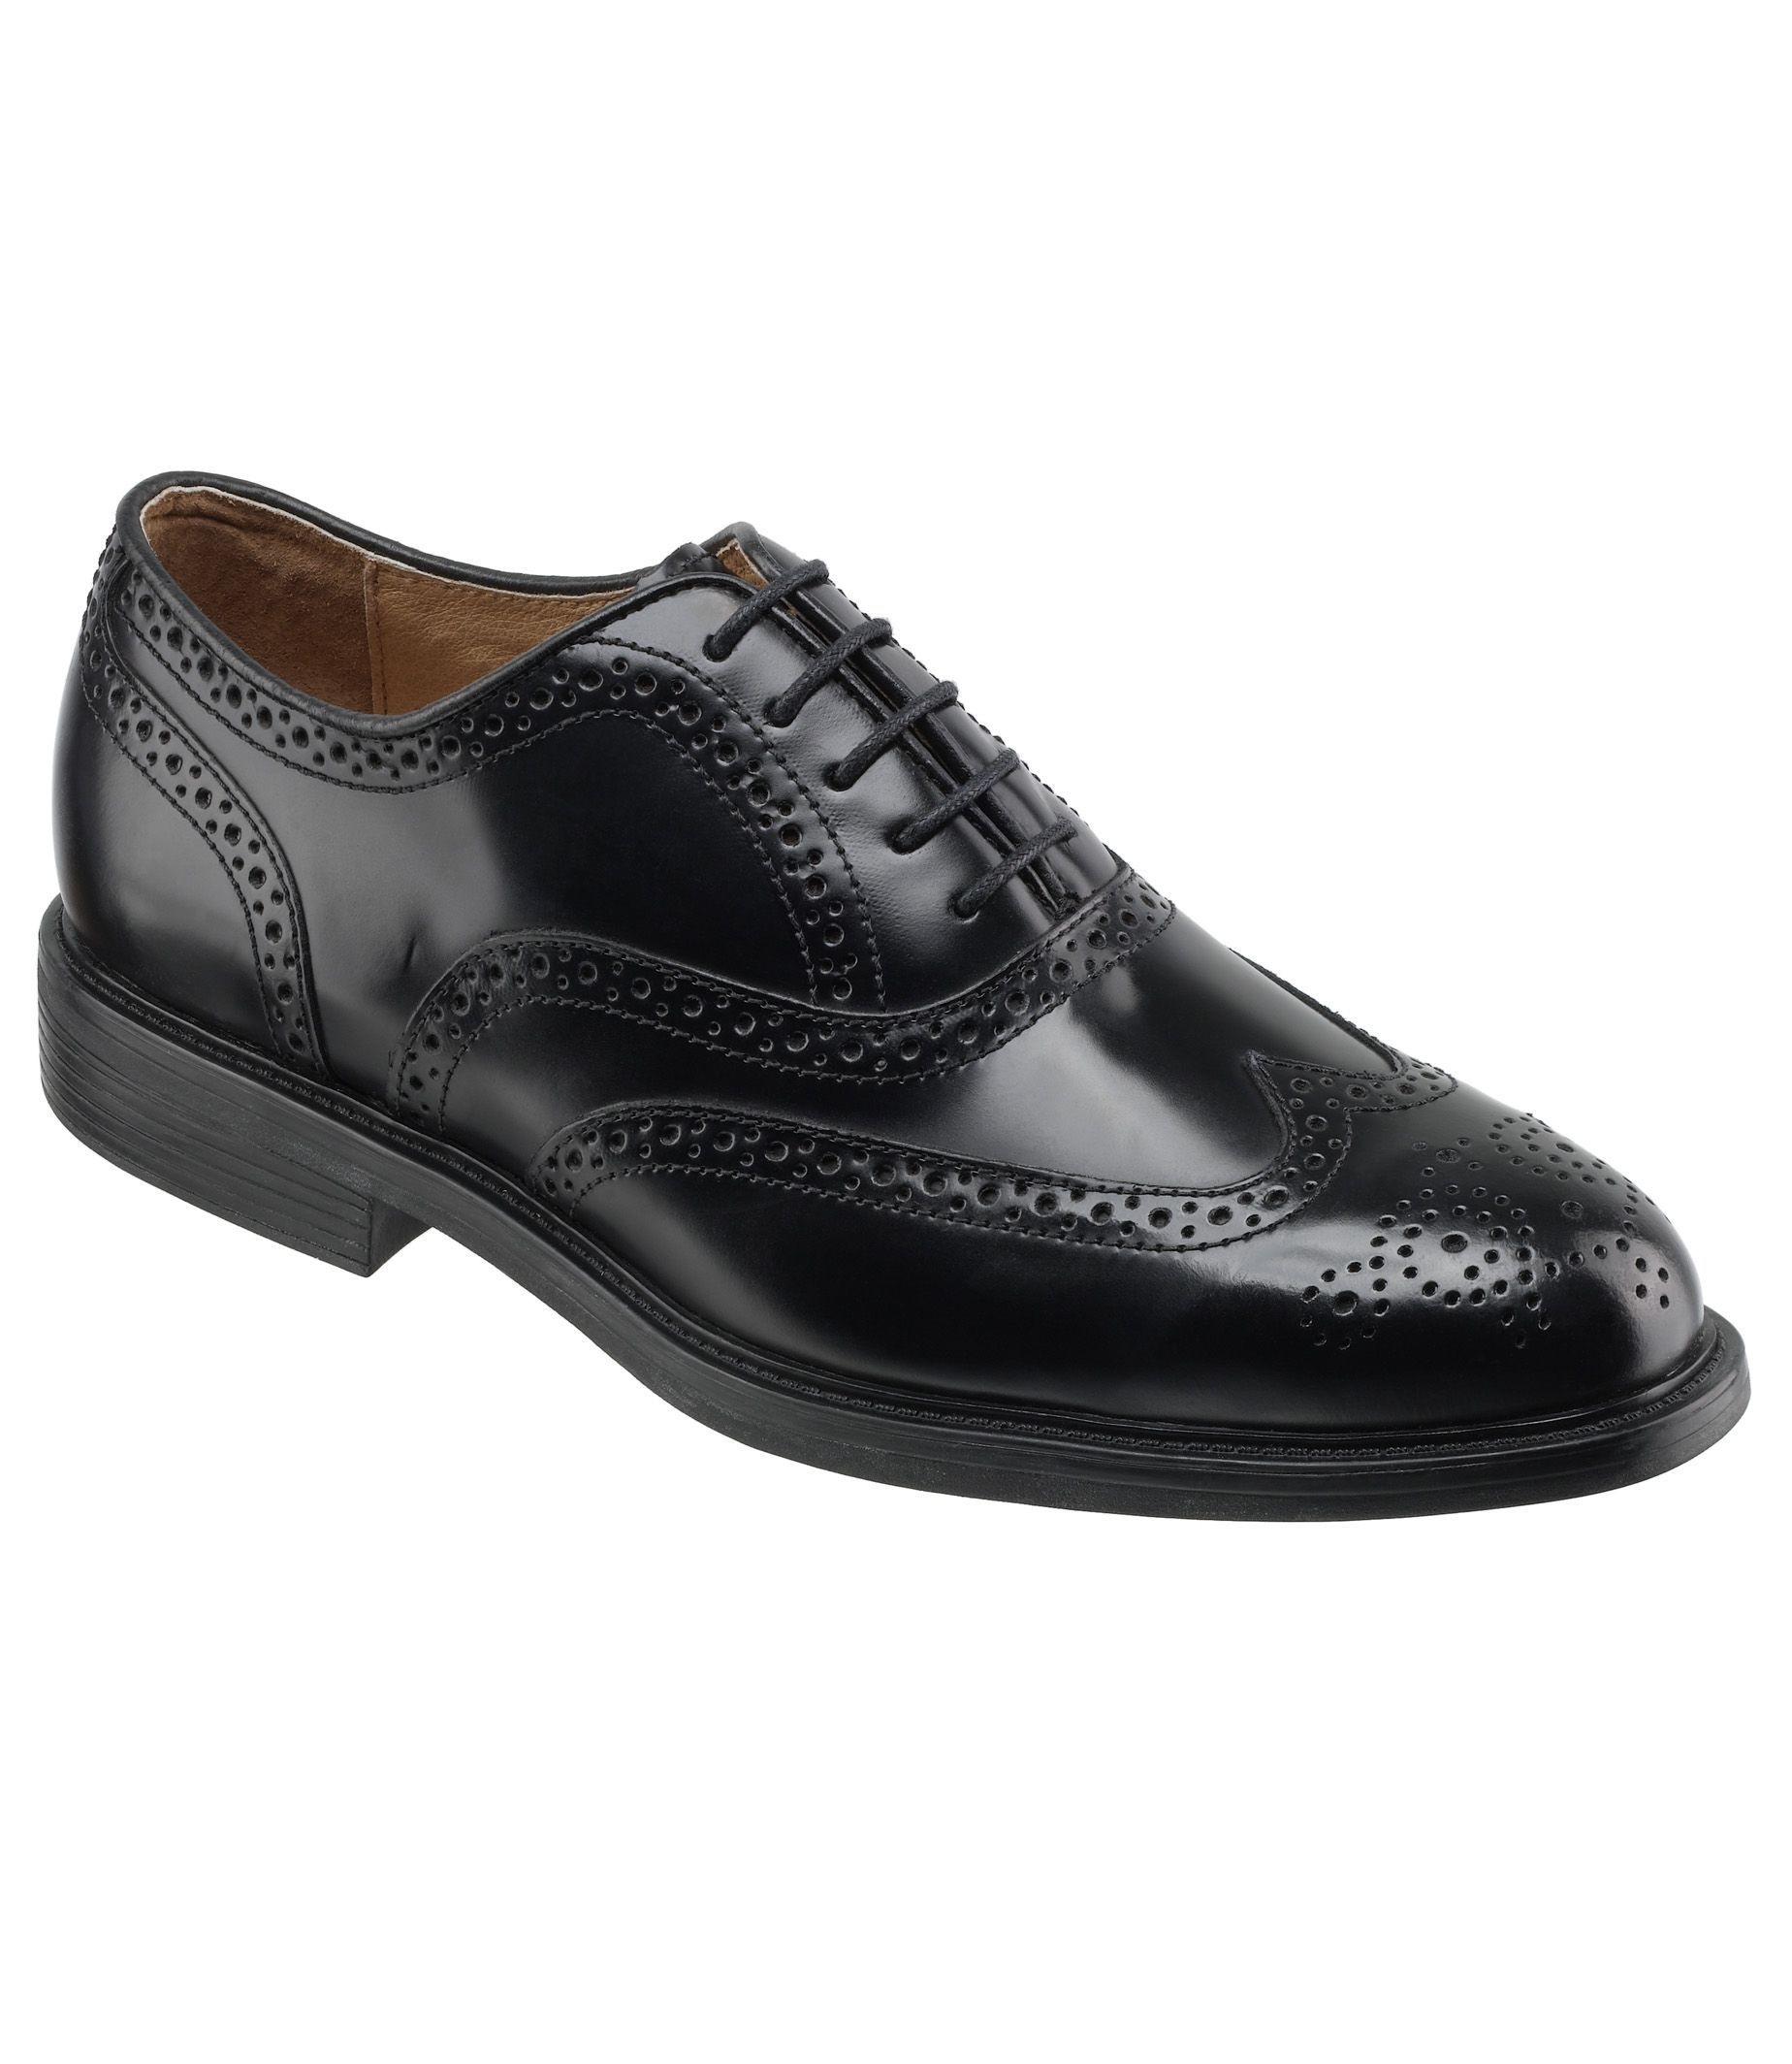 94c387aabbe men should wear black polished leather shoes which must be clean and ...